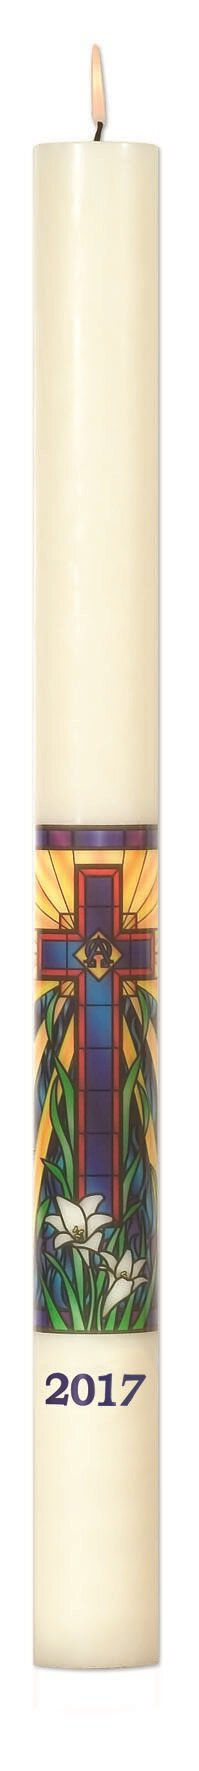 No 3 Special Radiant Light Mosaic Paschal Candle